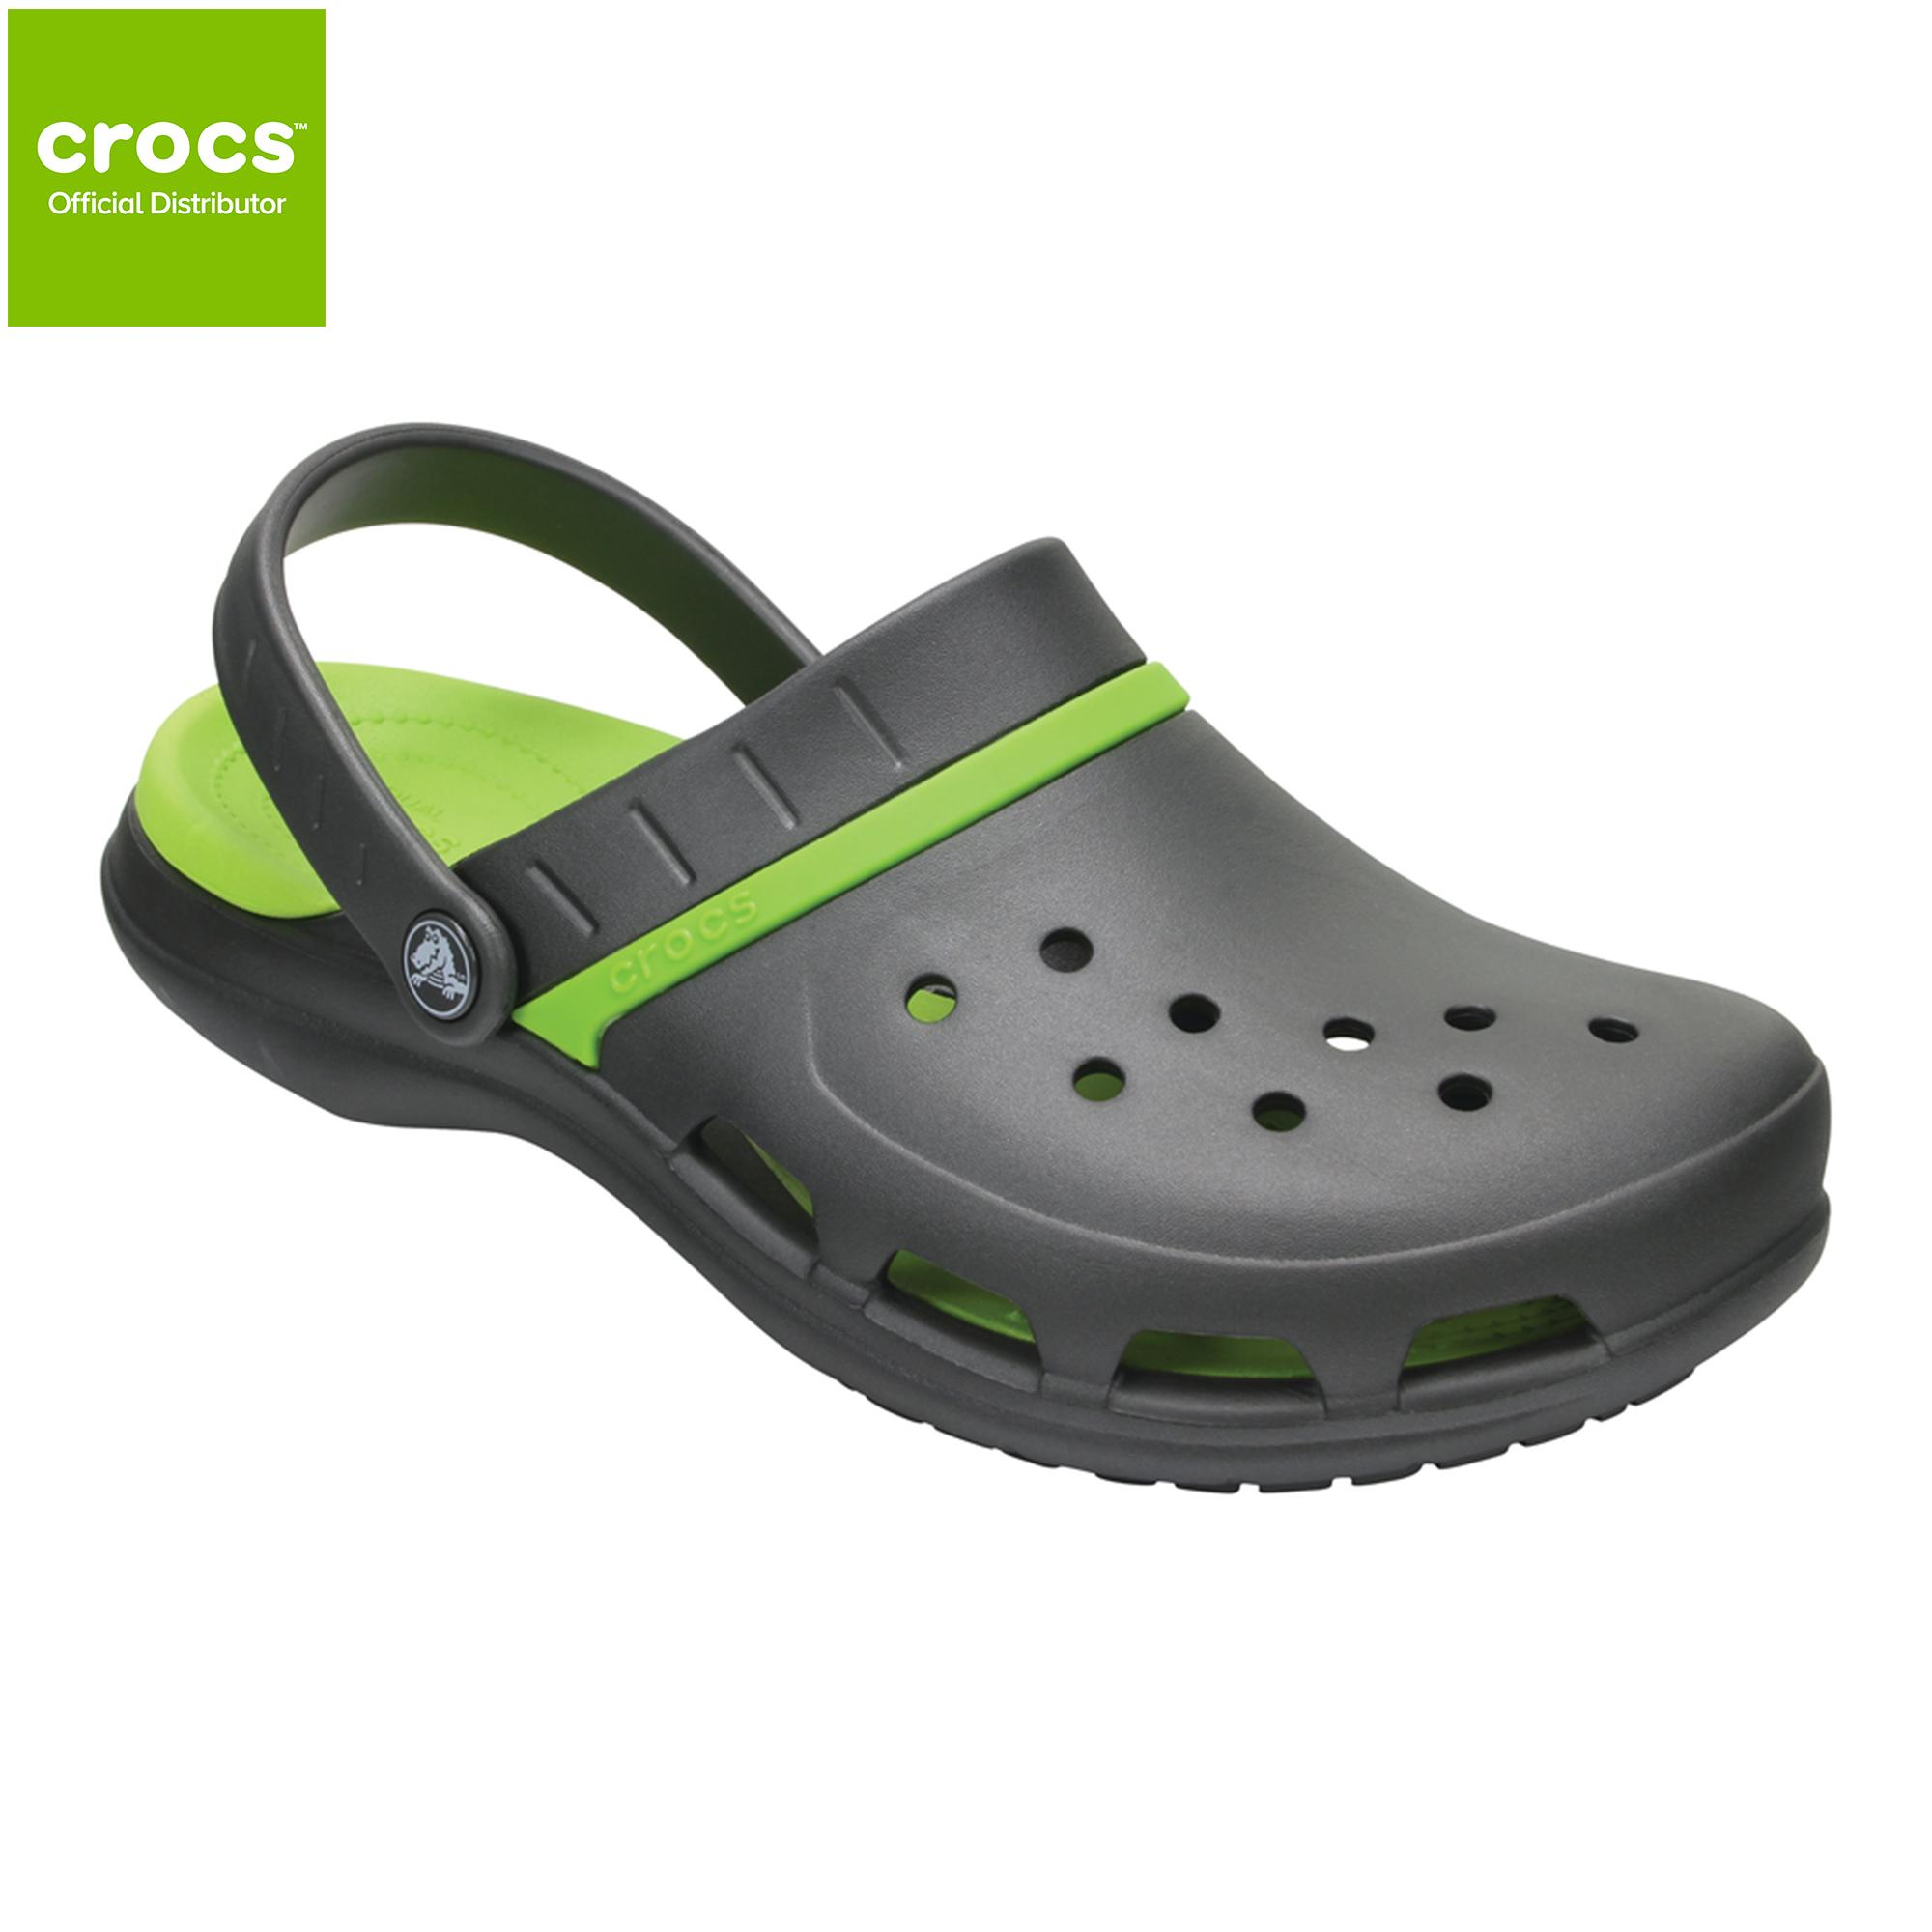 662b1b6a9497 Crocs Philippines  Crocs price list - Crocs Flats